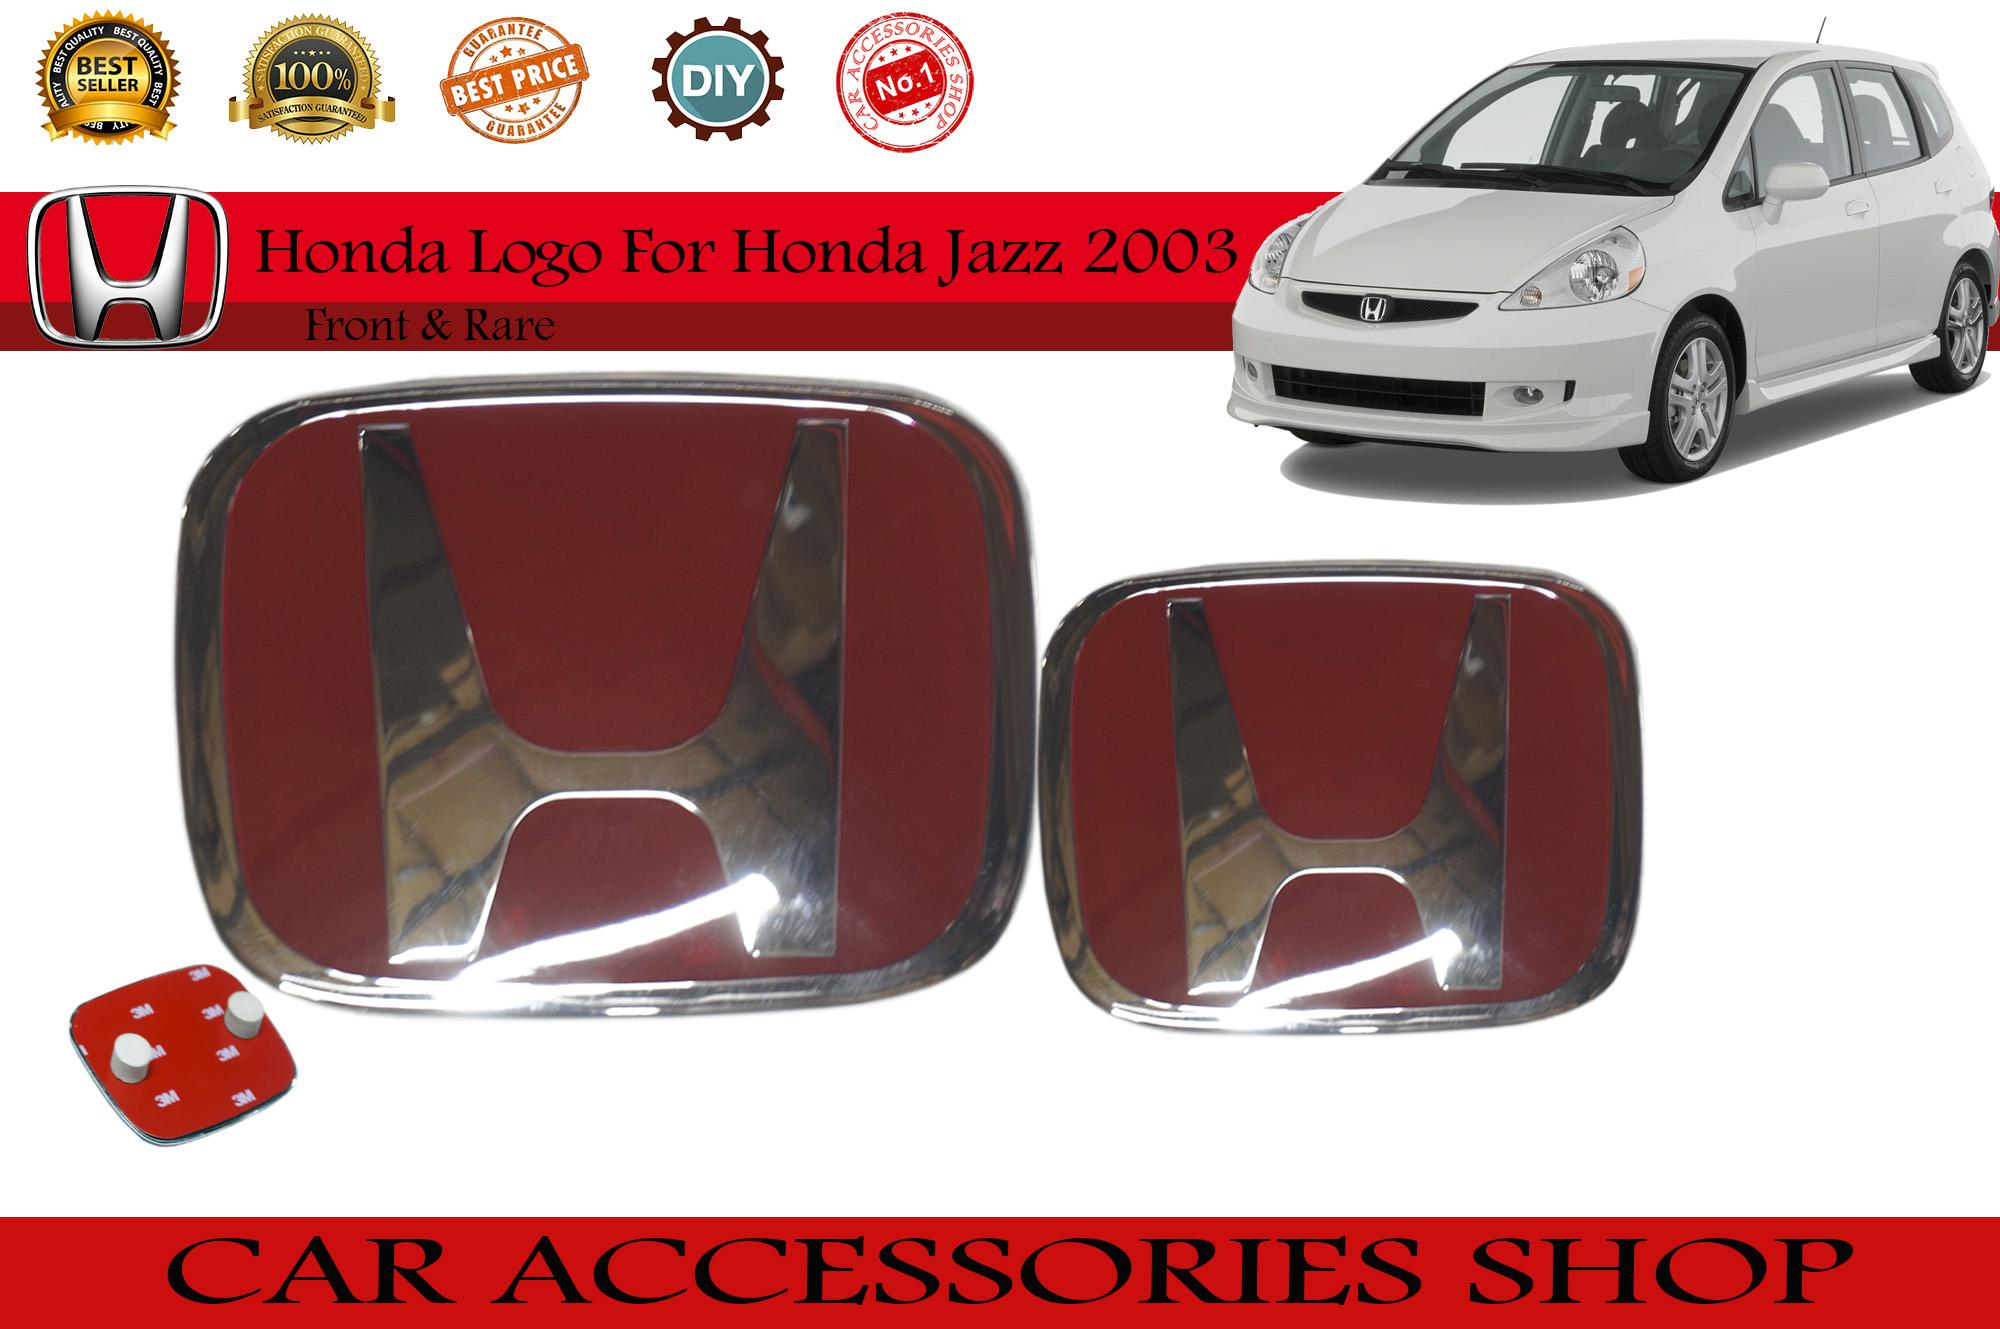 Honda Red ( H ) Logo For Honda Jazz 2003 Front & Rare By Car Accessories Shop.